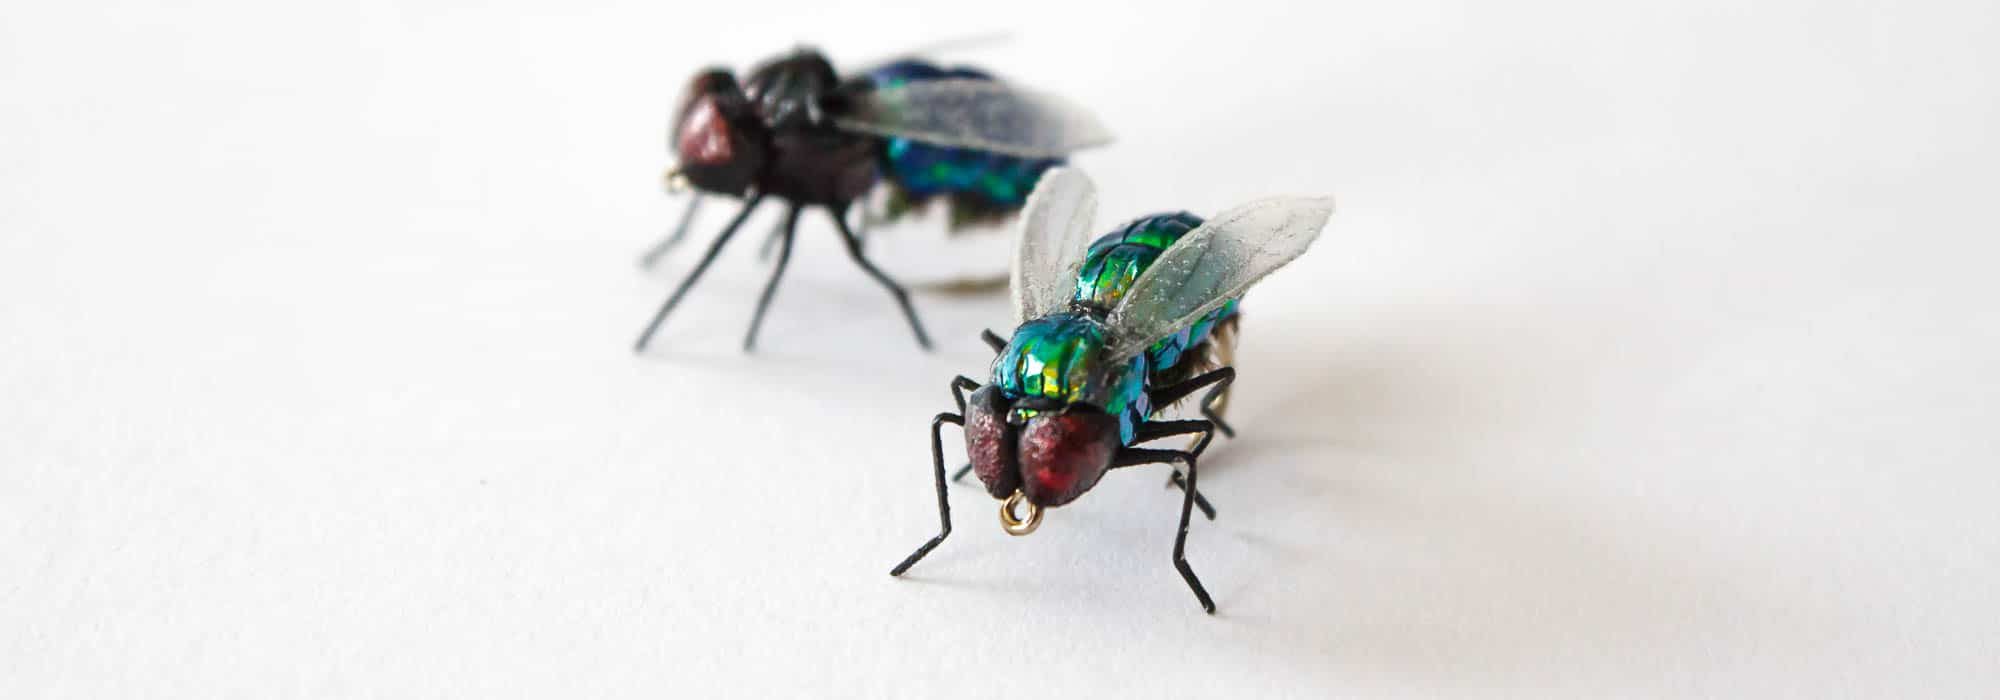 Realistic Terrestrials - Green Bottle Flies